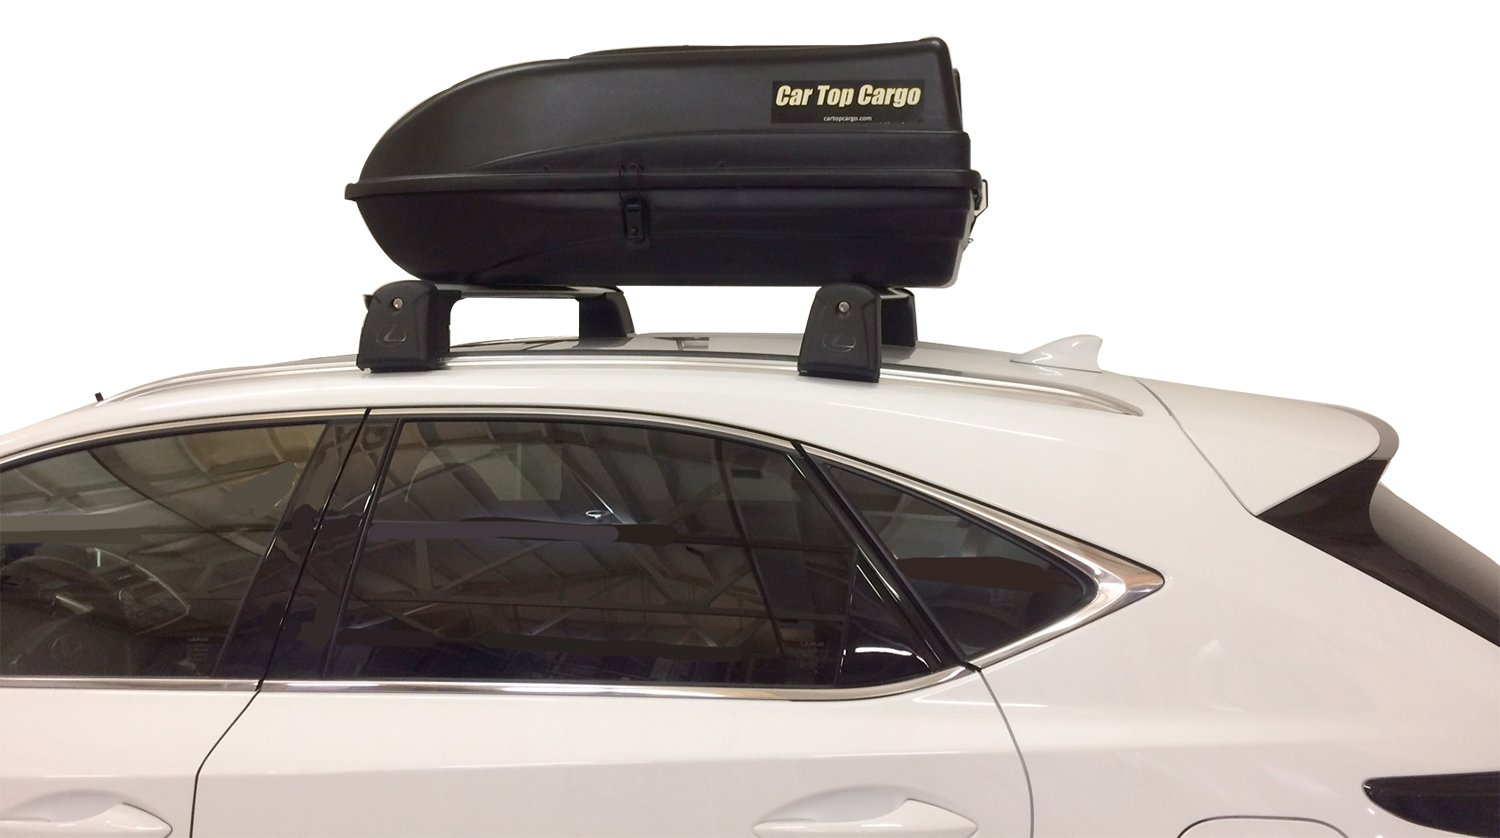 Car Top Cargo Box - Free S/H and Price Match Guarantee